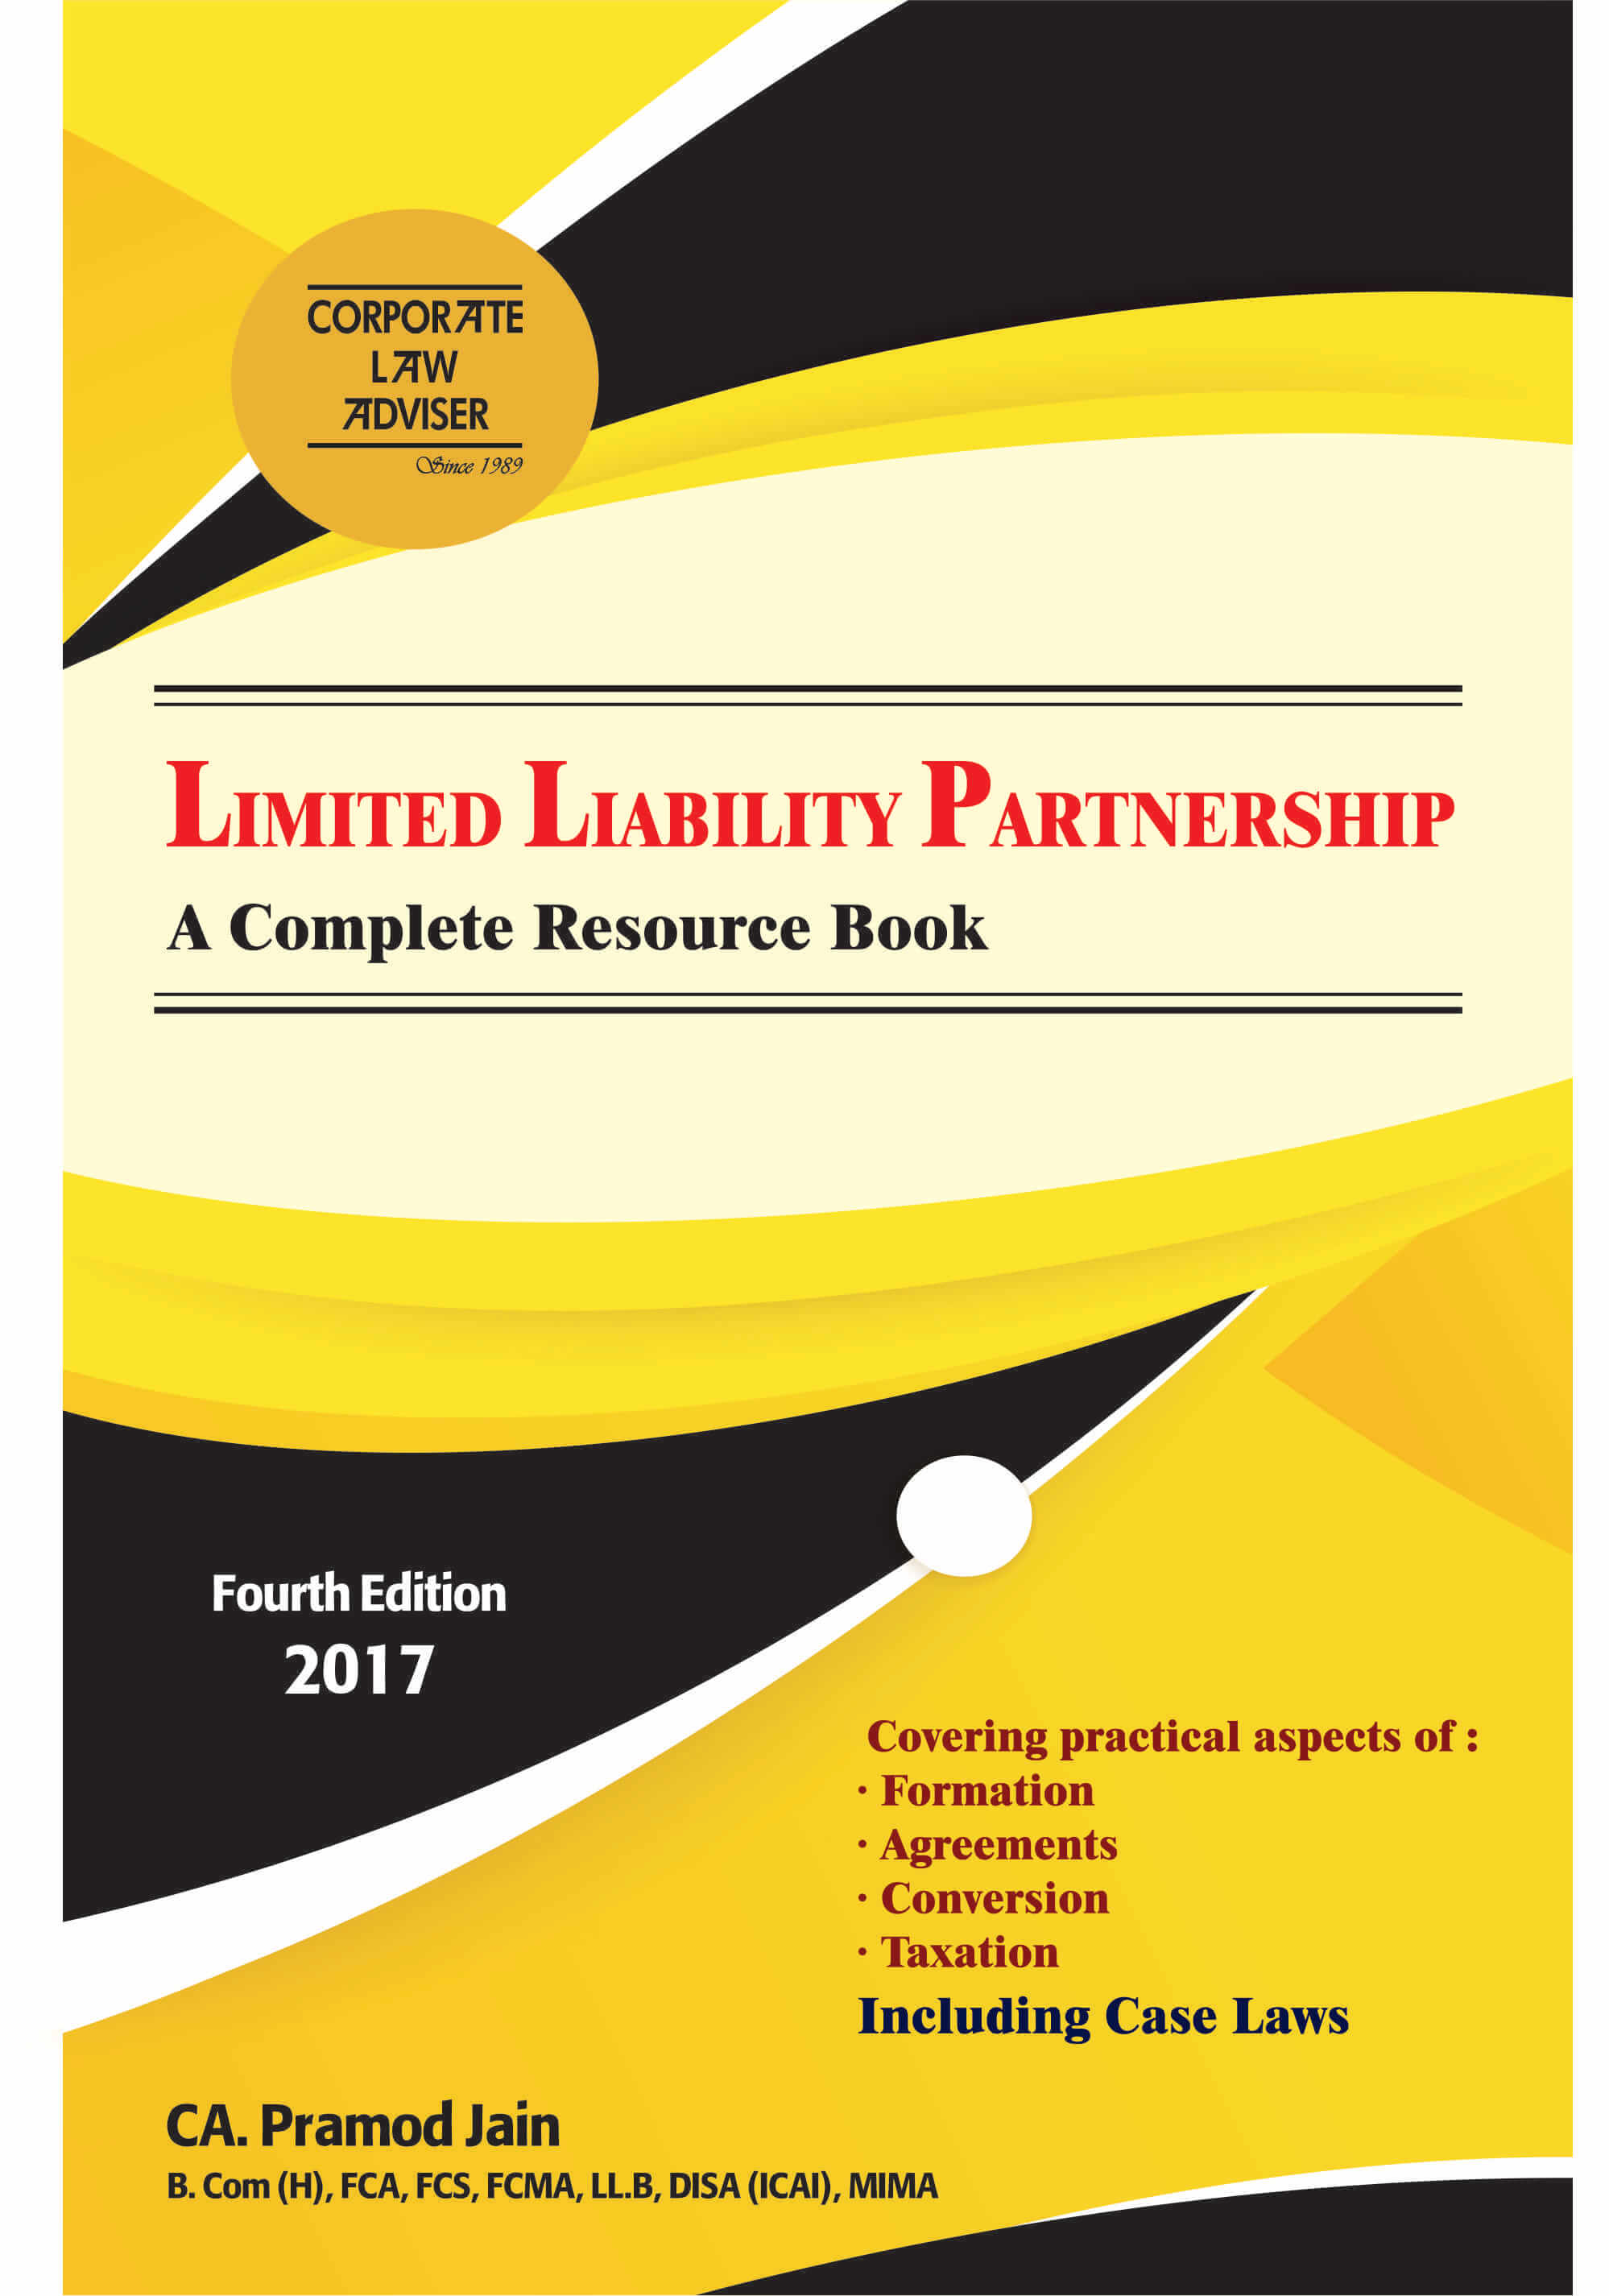 Importance of Limited Liability Partnership after Companies Act